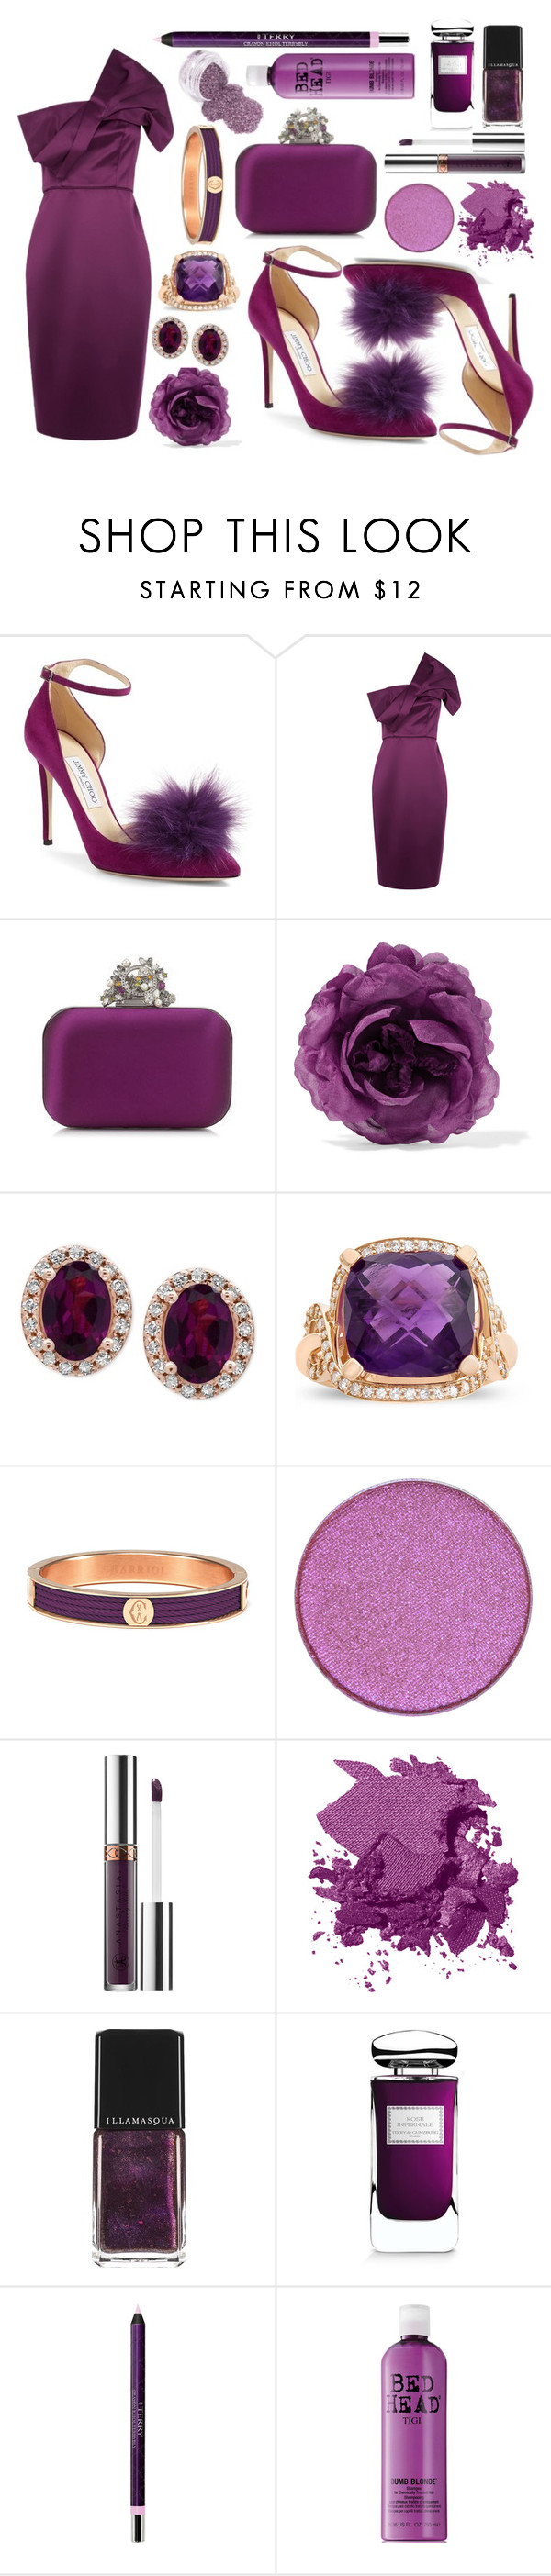 """Purple Pride"" by amanda-noel-fischer ❤ liked on Polyvore featuring Jimmy Choo, Gucci, Effy Jewelry, Charriol, Anastasia Beverly Hills, Bobbi Brown Cosmetics, Illamasqua, By Terry and TIGI"